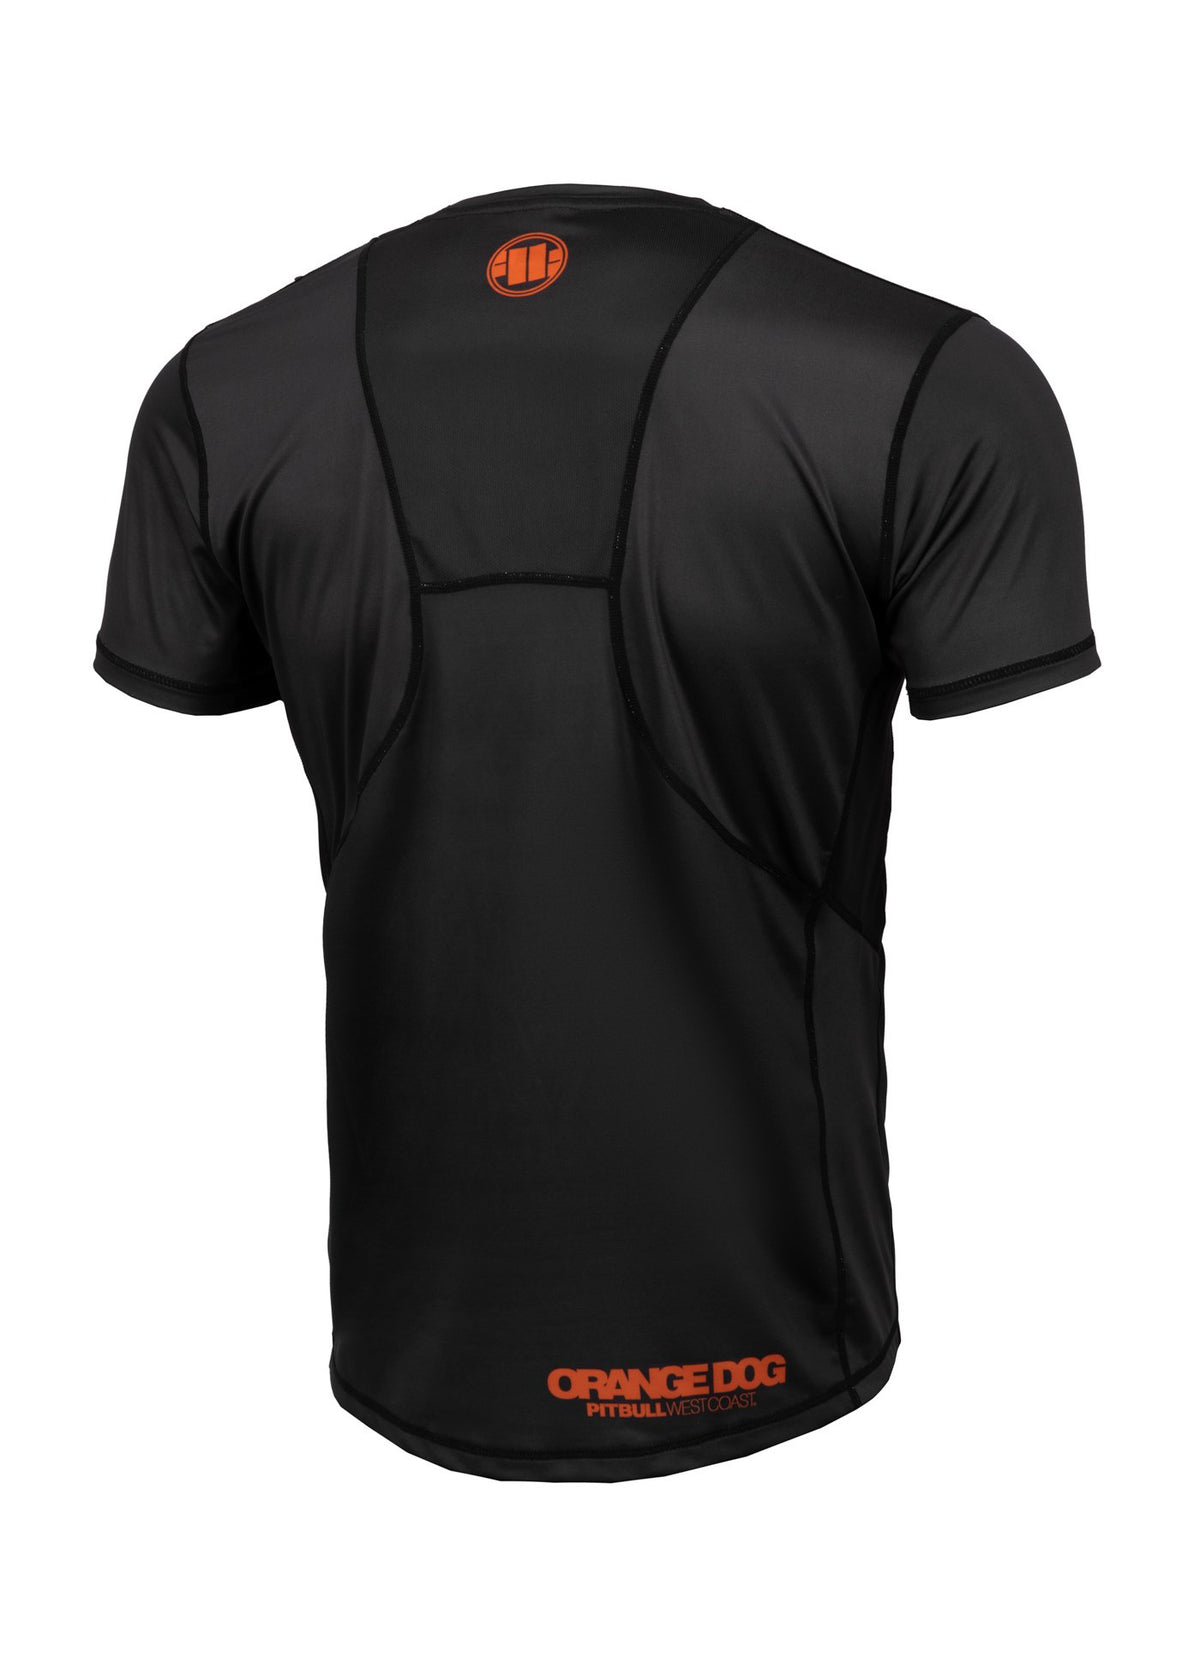 Rashguard Mesh ORANGE DOG Black